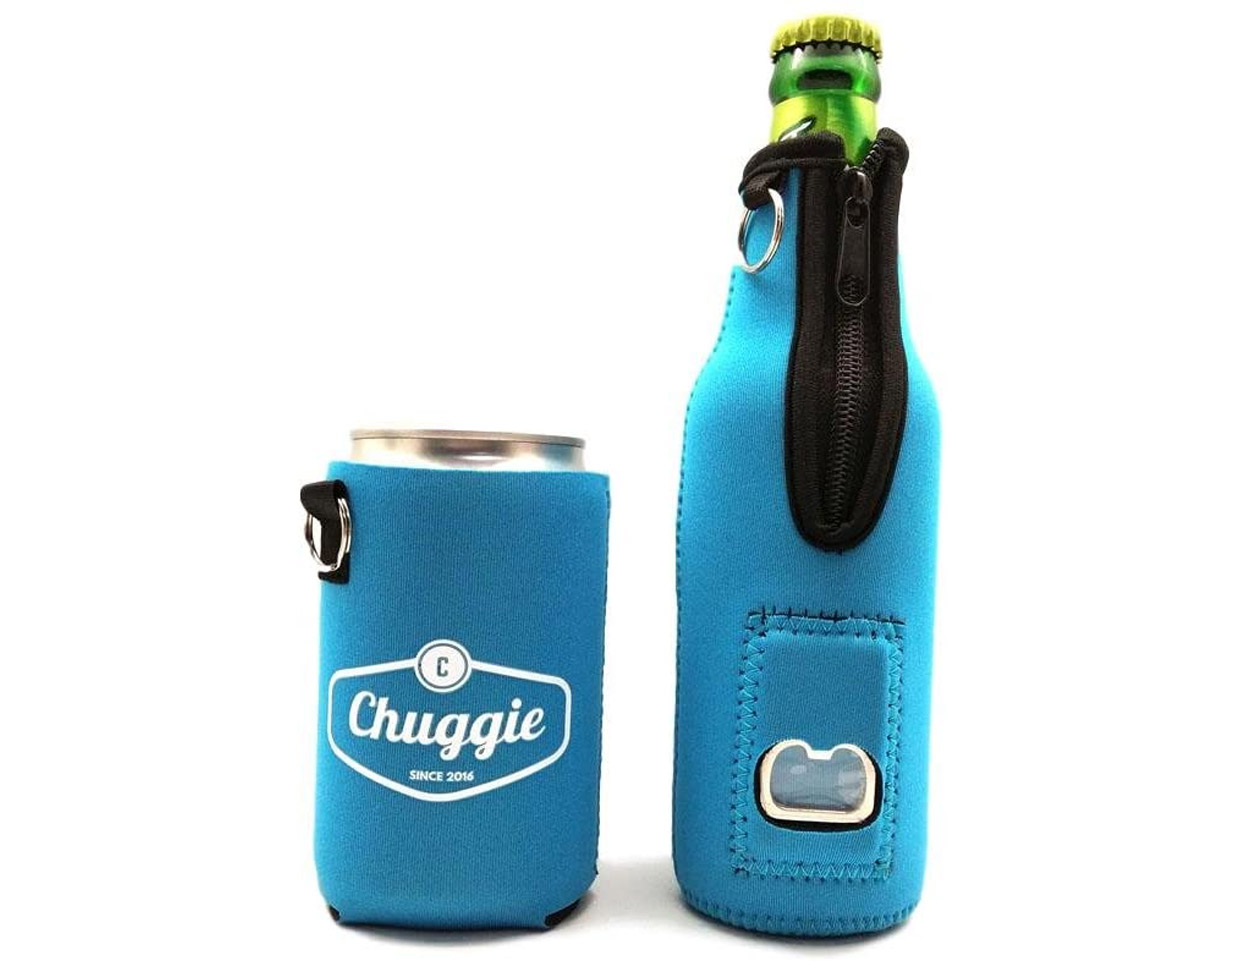 Triple Pocket Beer Koozie Holds pack of cigarettes and lighter (or snack, phone, lipstick)